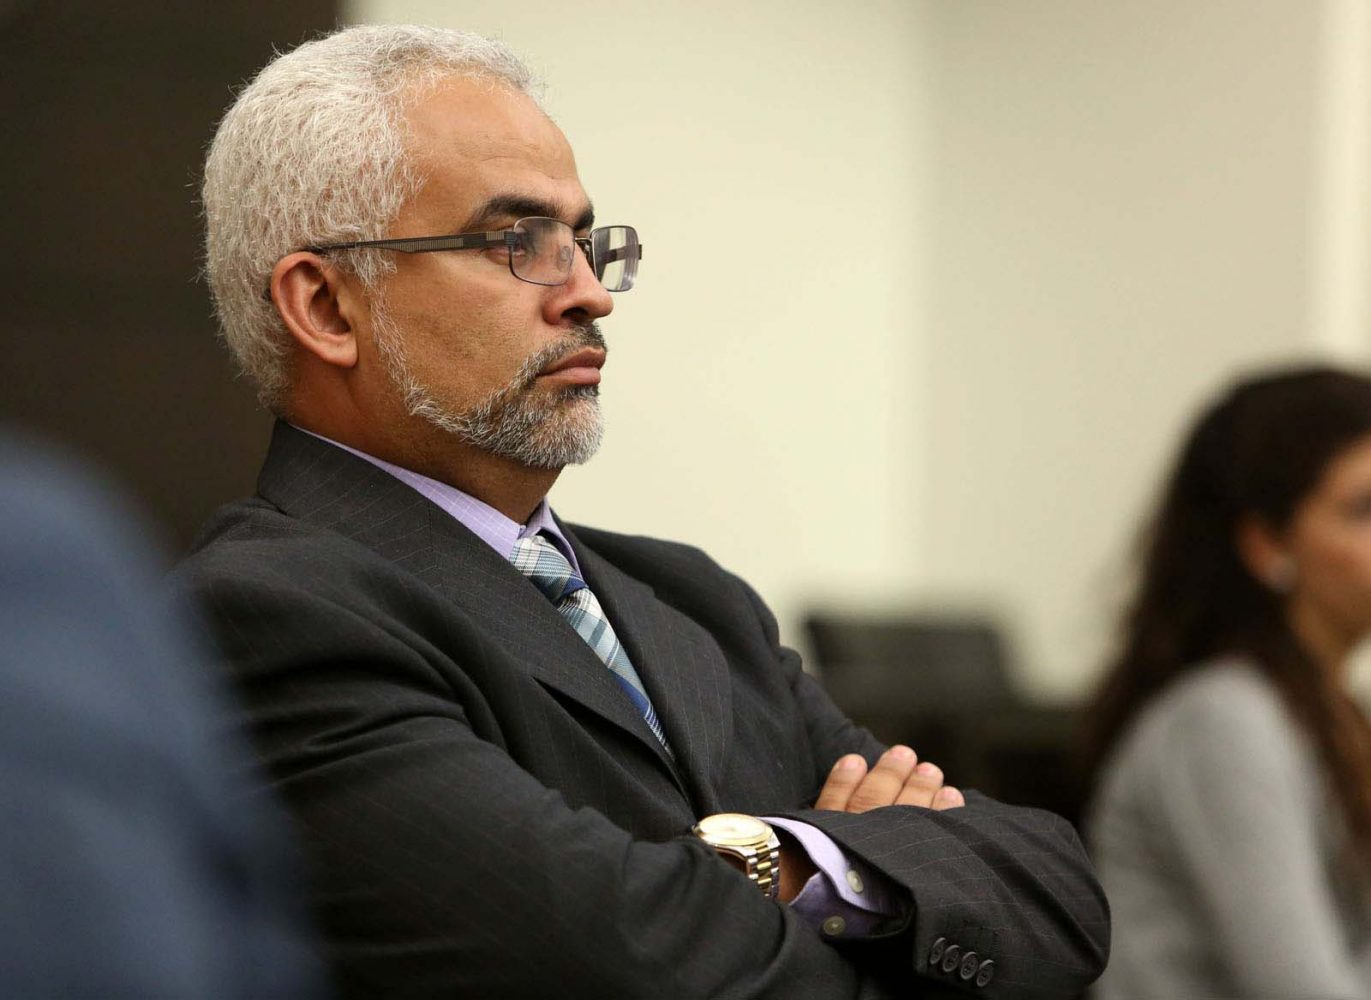 Carlos Aguilar, the father of slain University of Florida student Christian Aguilar, listens to jury instructions for Pedro Bravo's murder trial in courtroom 1B of the Alachua County Criminal Justice Center Friday, August 15, 2014.  Bravo is accused of killing Christian Aguilar.  (Doug Finger/The Gainesville Sun/Pool)